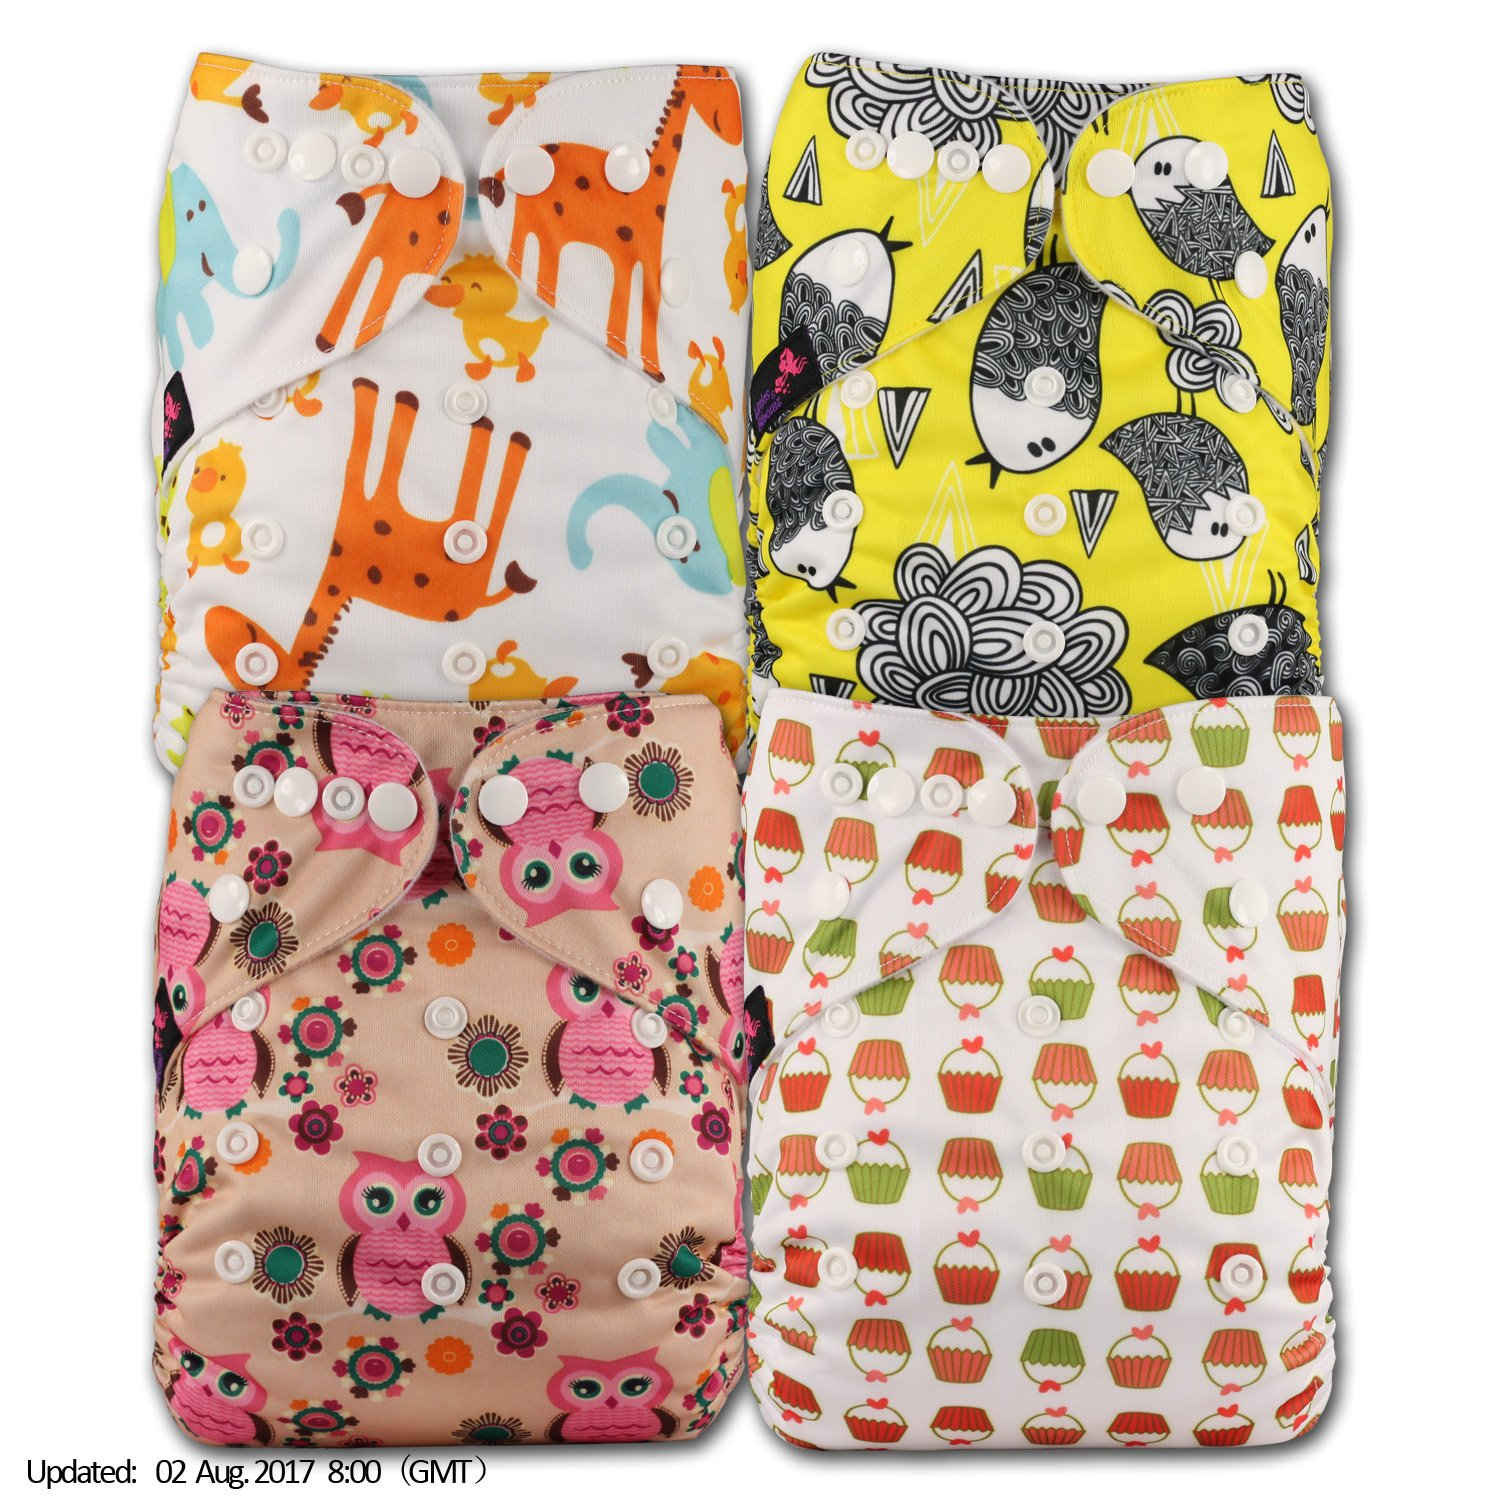 Littles & Bloomz, Reusable Pocket Cloth Nappy, Fastener: Popper, Set of 4, Patterns 413, With 4 Bamboo Inserts